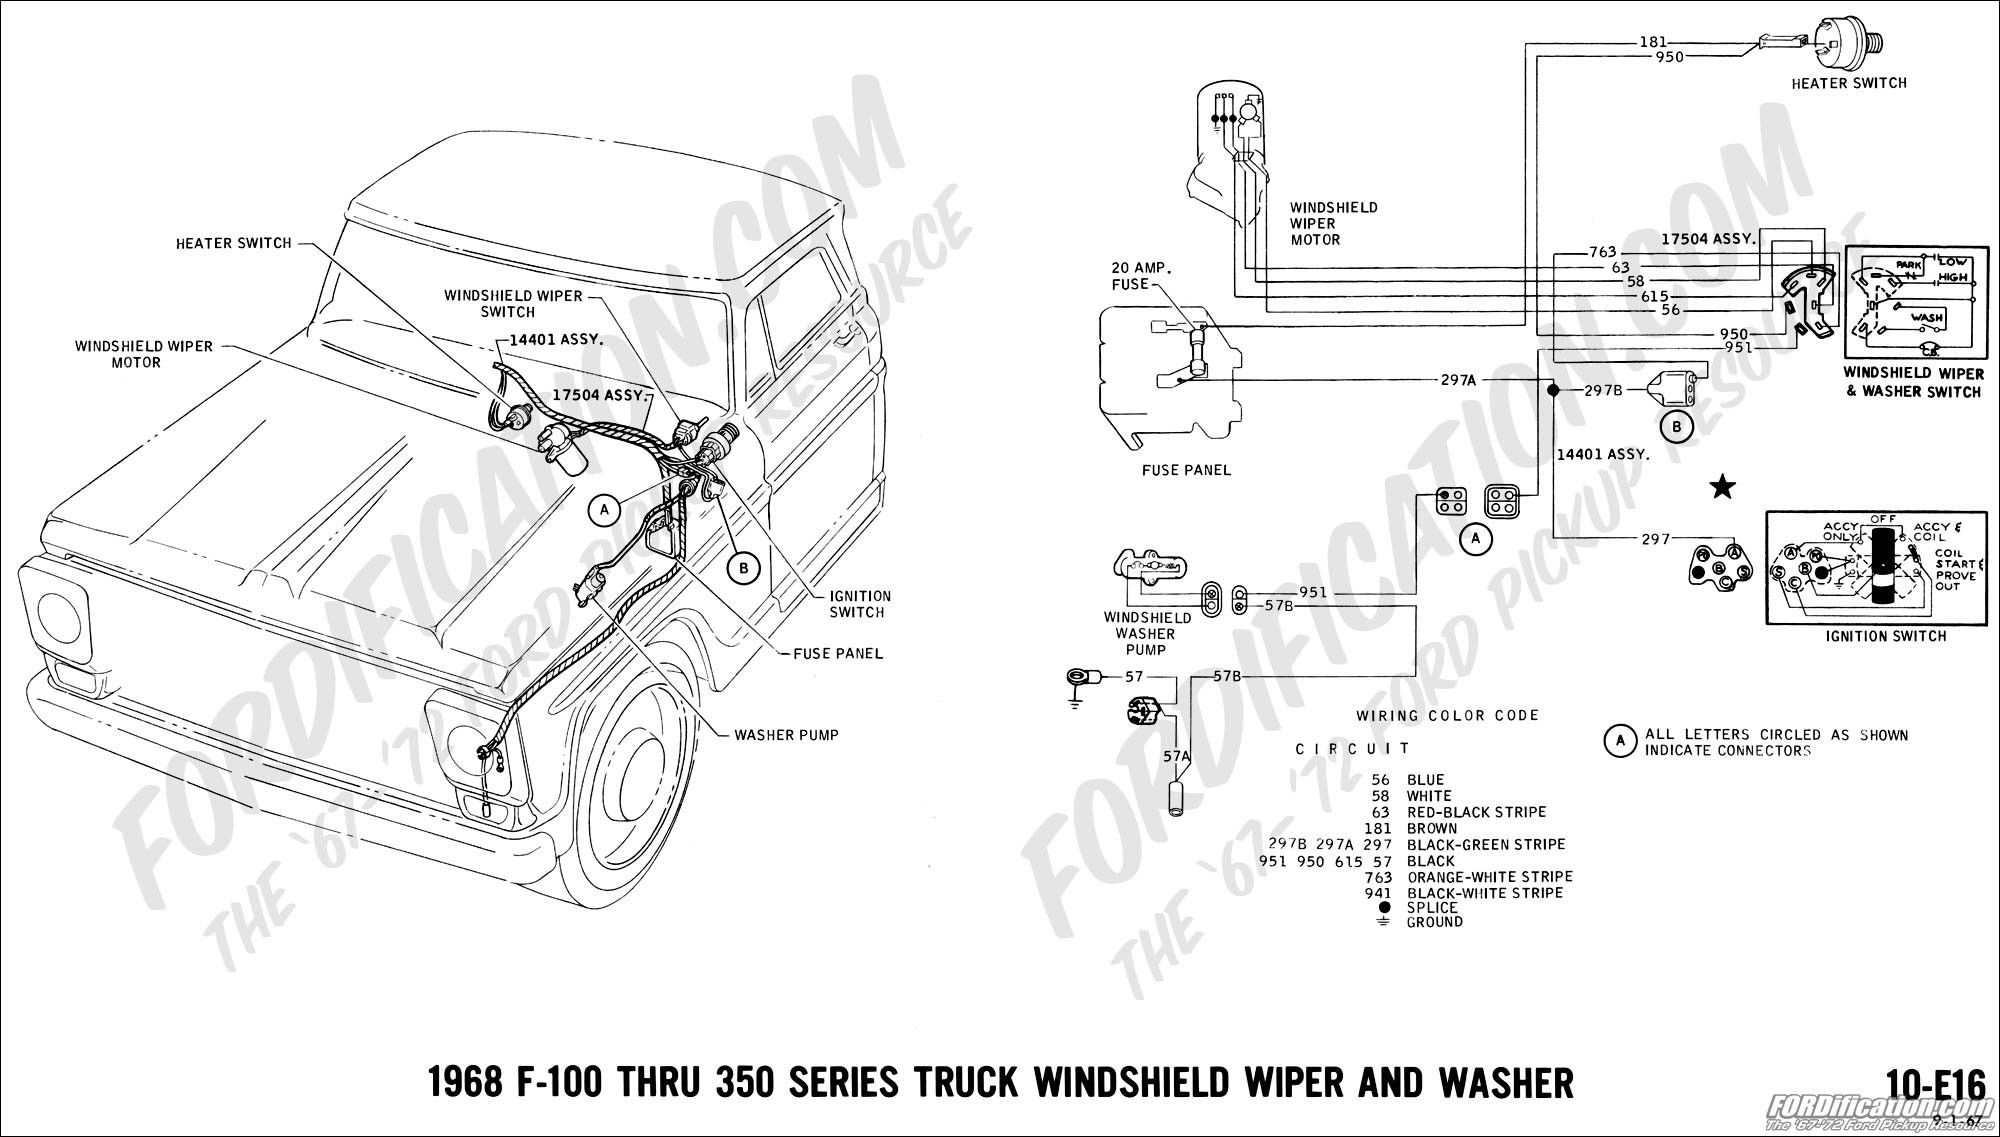 97 Ford Ranger Windshield Washer Wiring Diagram Engine My Truck Technical Drawings And Schematics Section H Rh Fordification